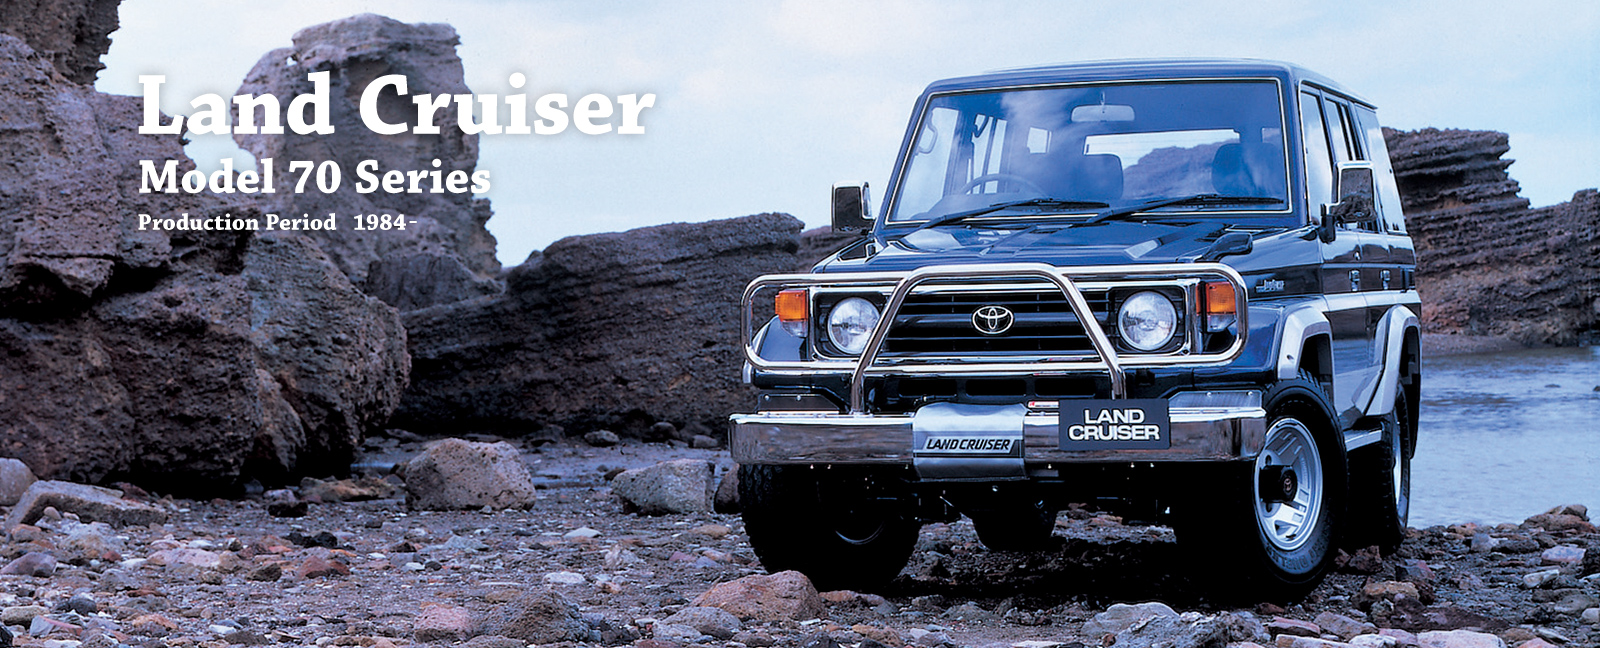 Vehicle heritage land cruiser model 70 series